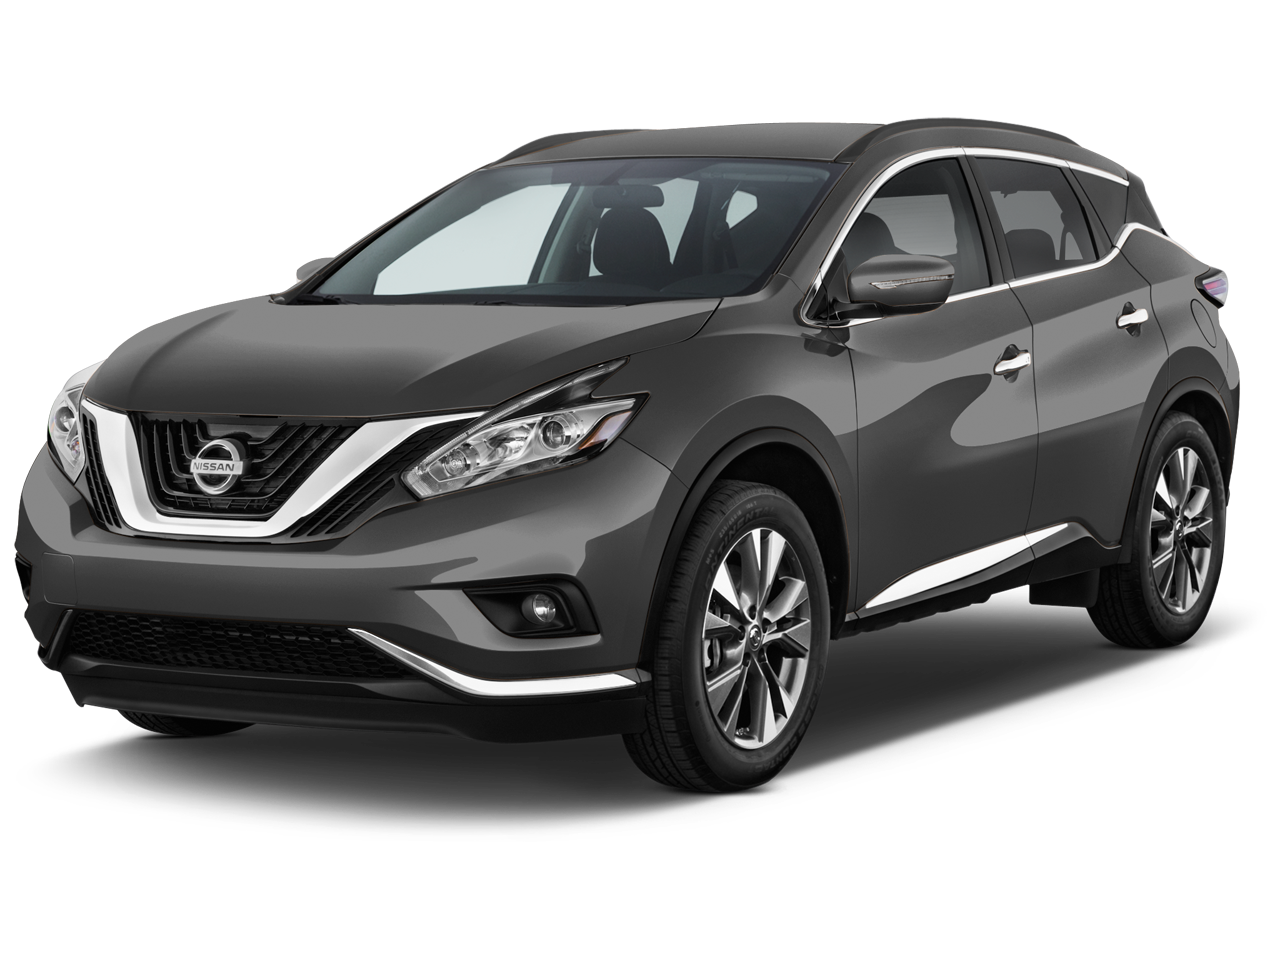 new 2017 nissan murano sl near renton wa younker nissan. Black Bedroom Furniture Sets. Home Design Ideas